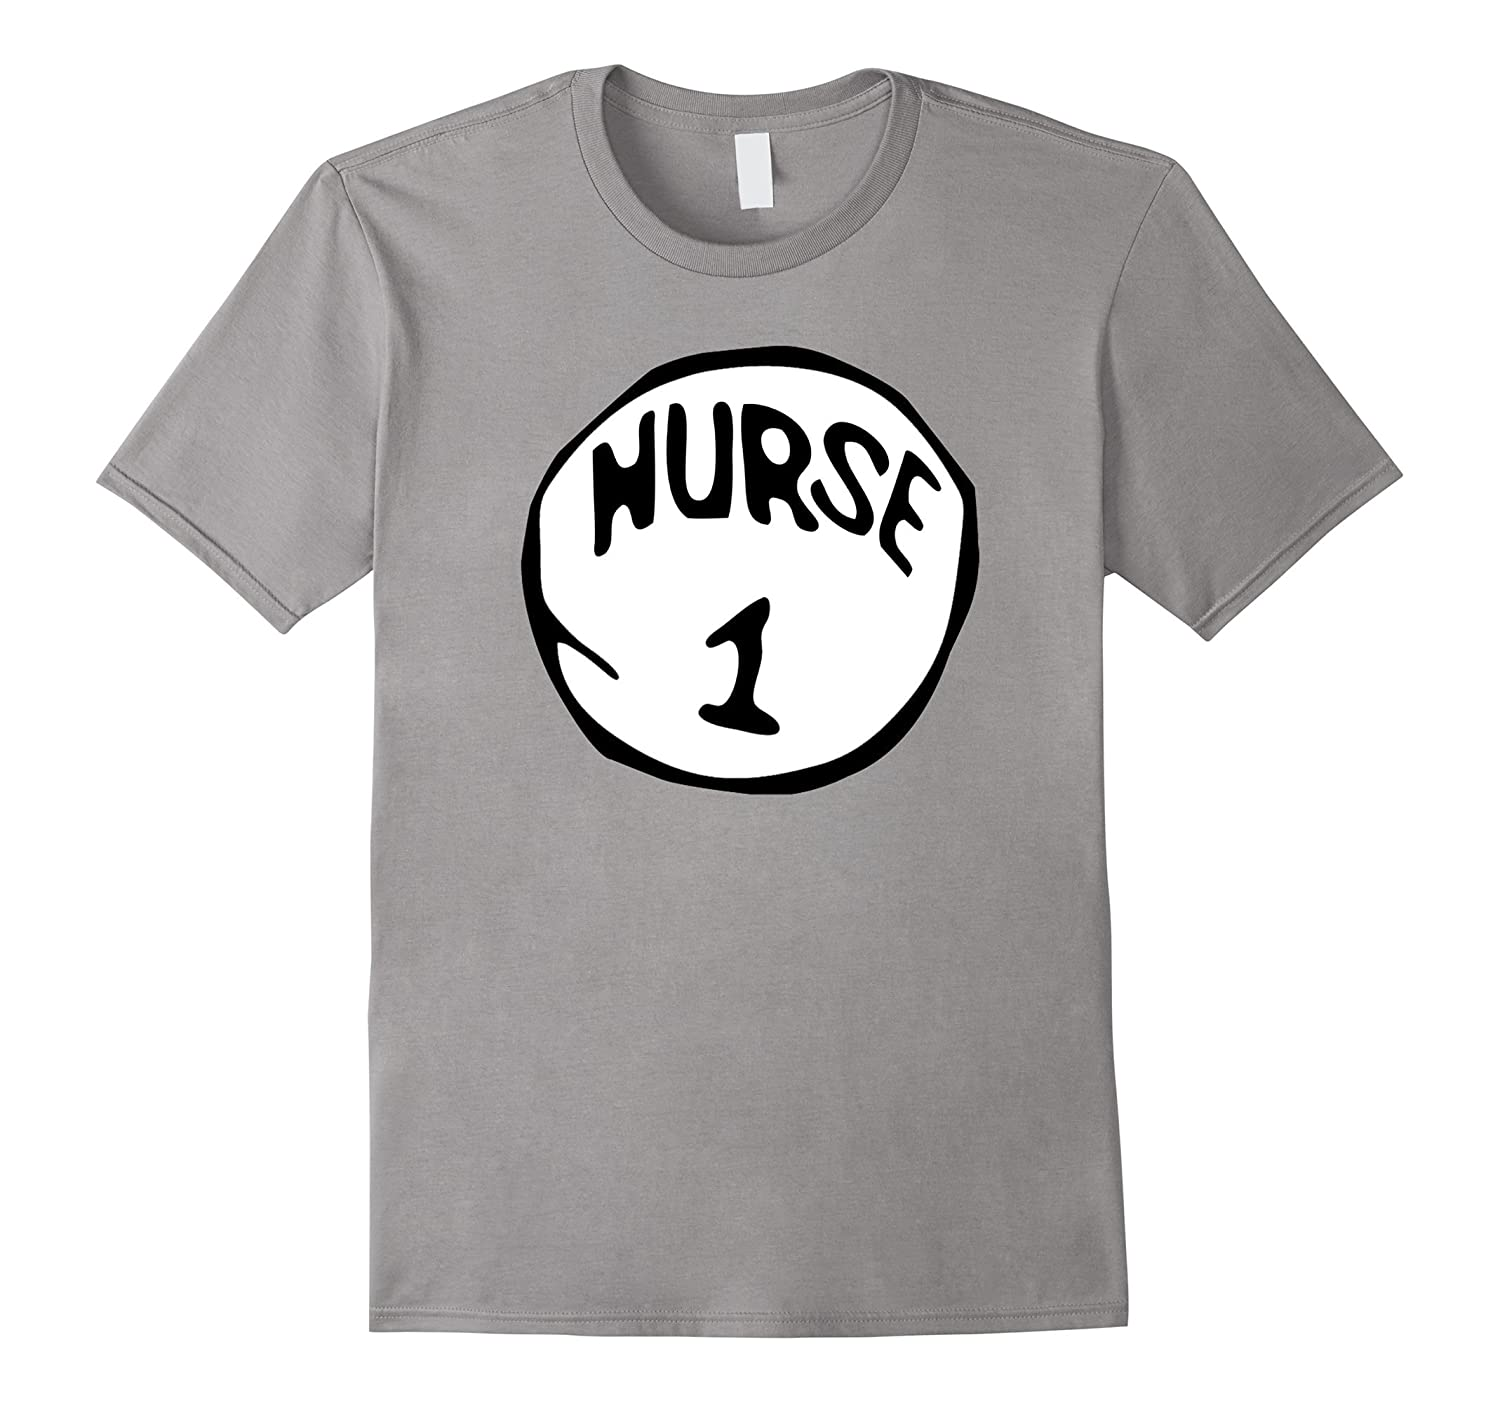 66191bc25de9 Nurse 1 Funny RN Holiday Halloween Costume Nurses T-Shirt – Ticalolo.com